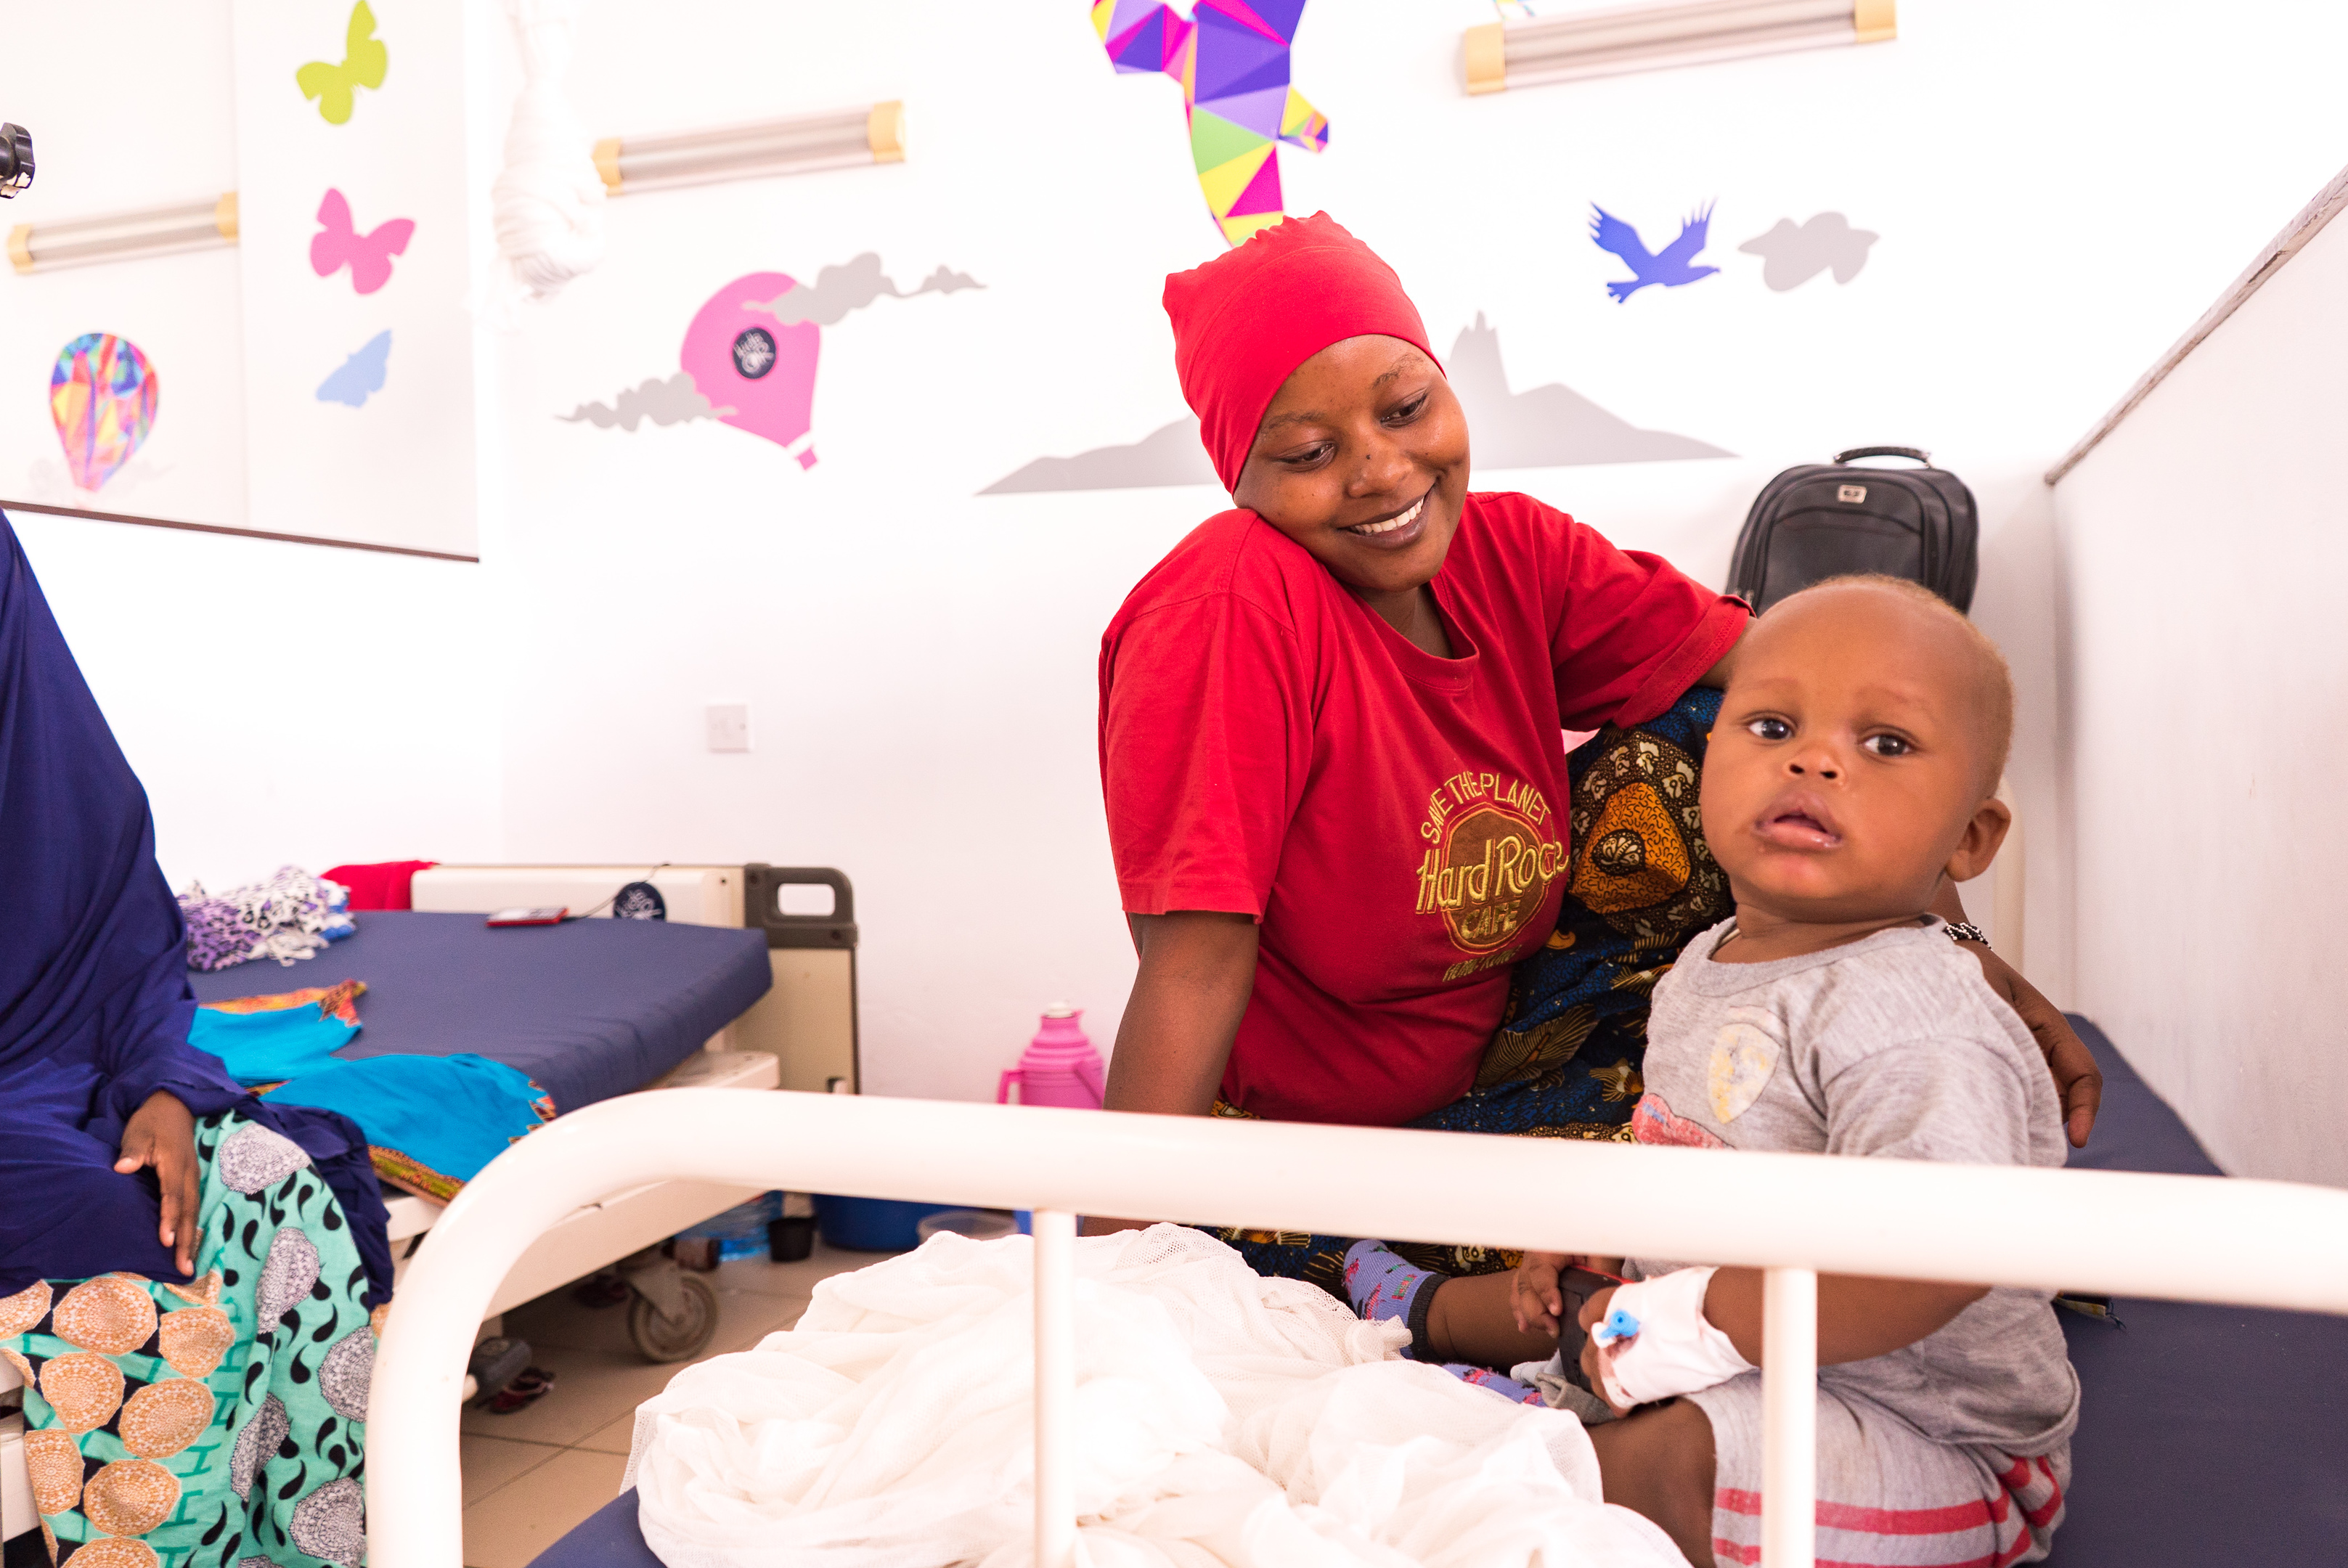 The charity helps to build safe operating theatres around the world, such as in Malawi, Rwanda, and Tanzania.